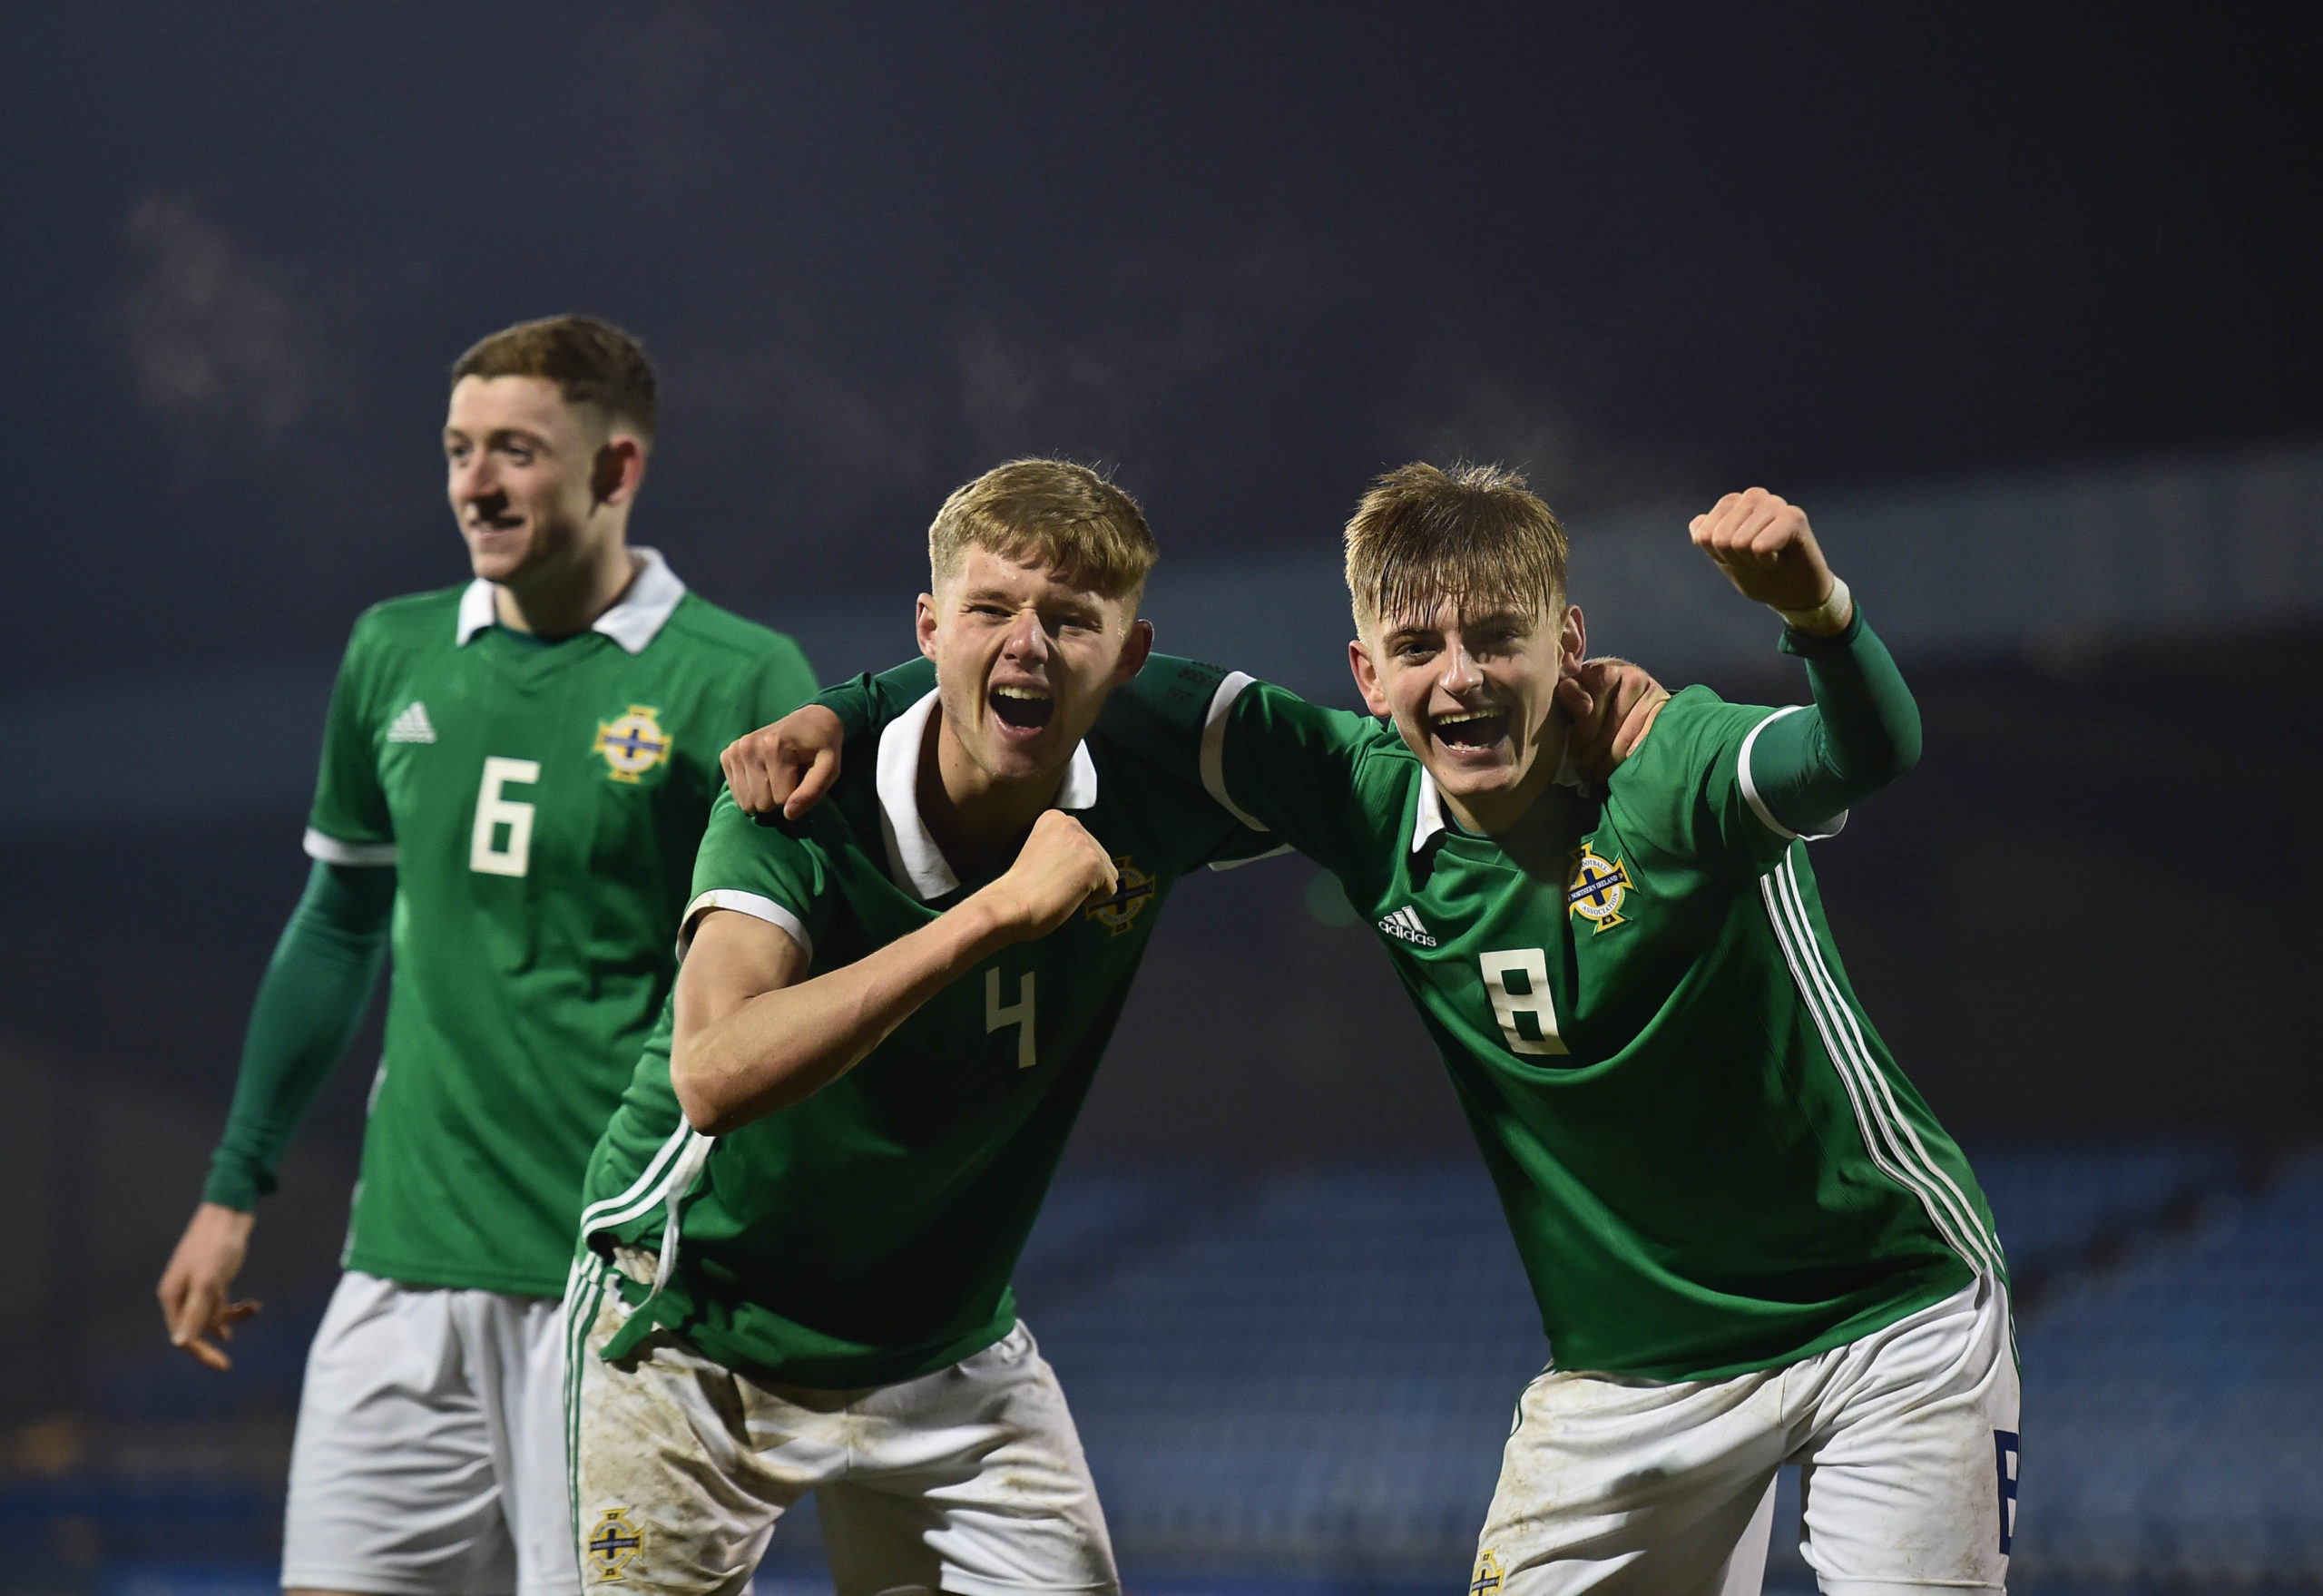 U19 Northern Ireland v U19 Germany - U19 Four-Nations Tournament